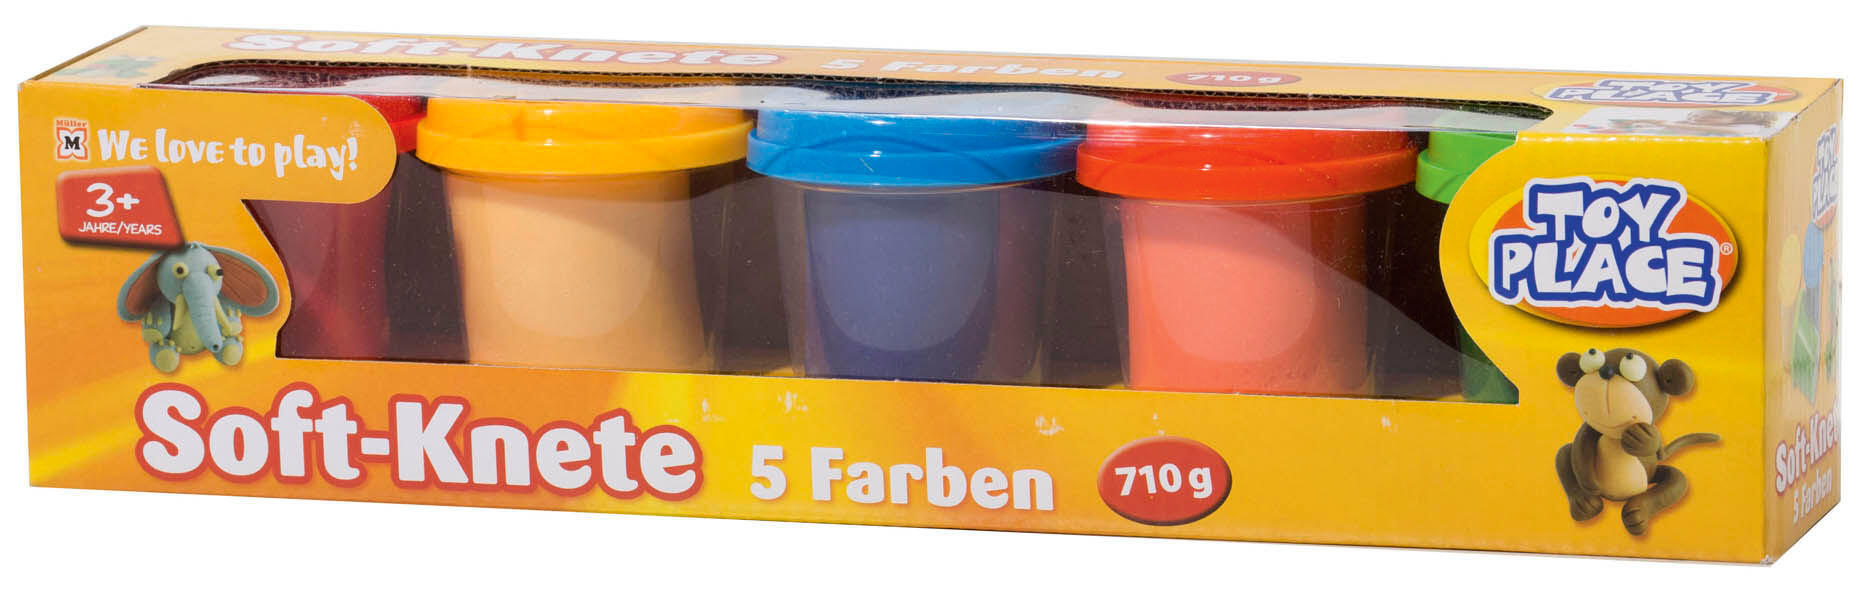 Toy Place Soft-Knete, 5 Farben